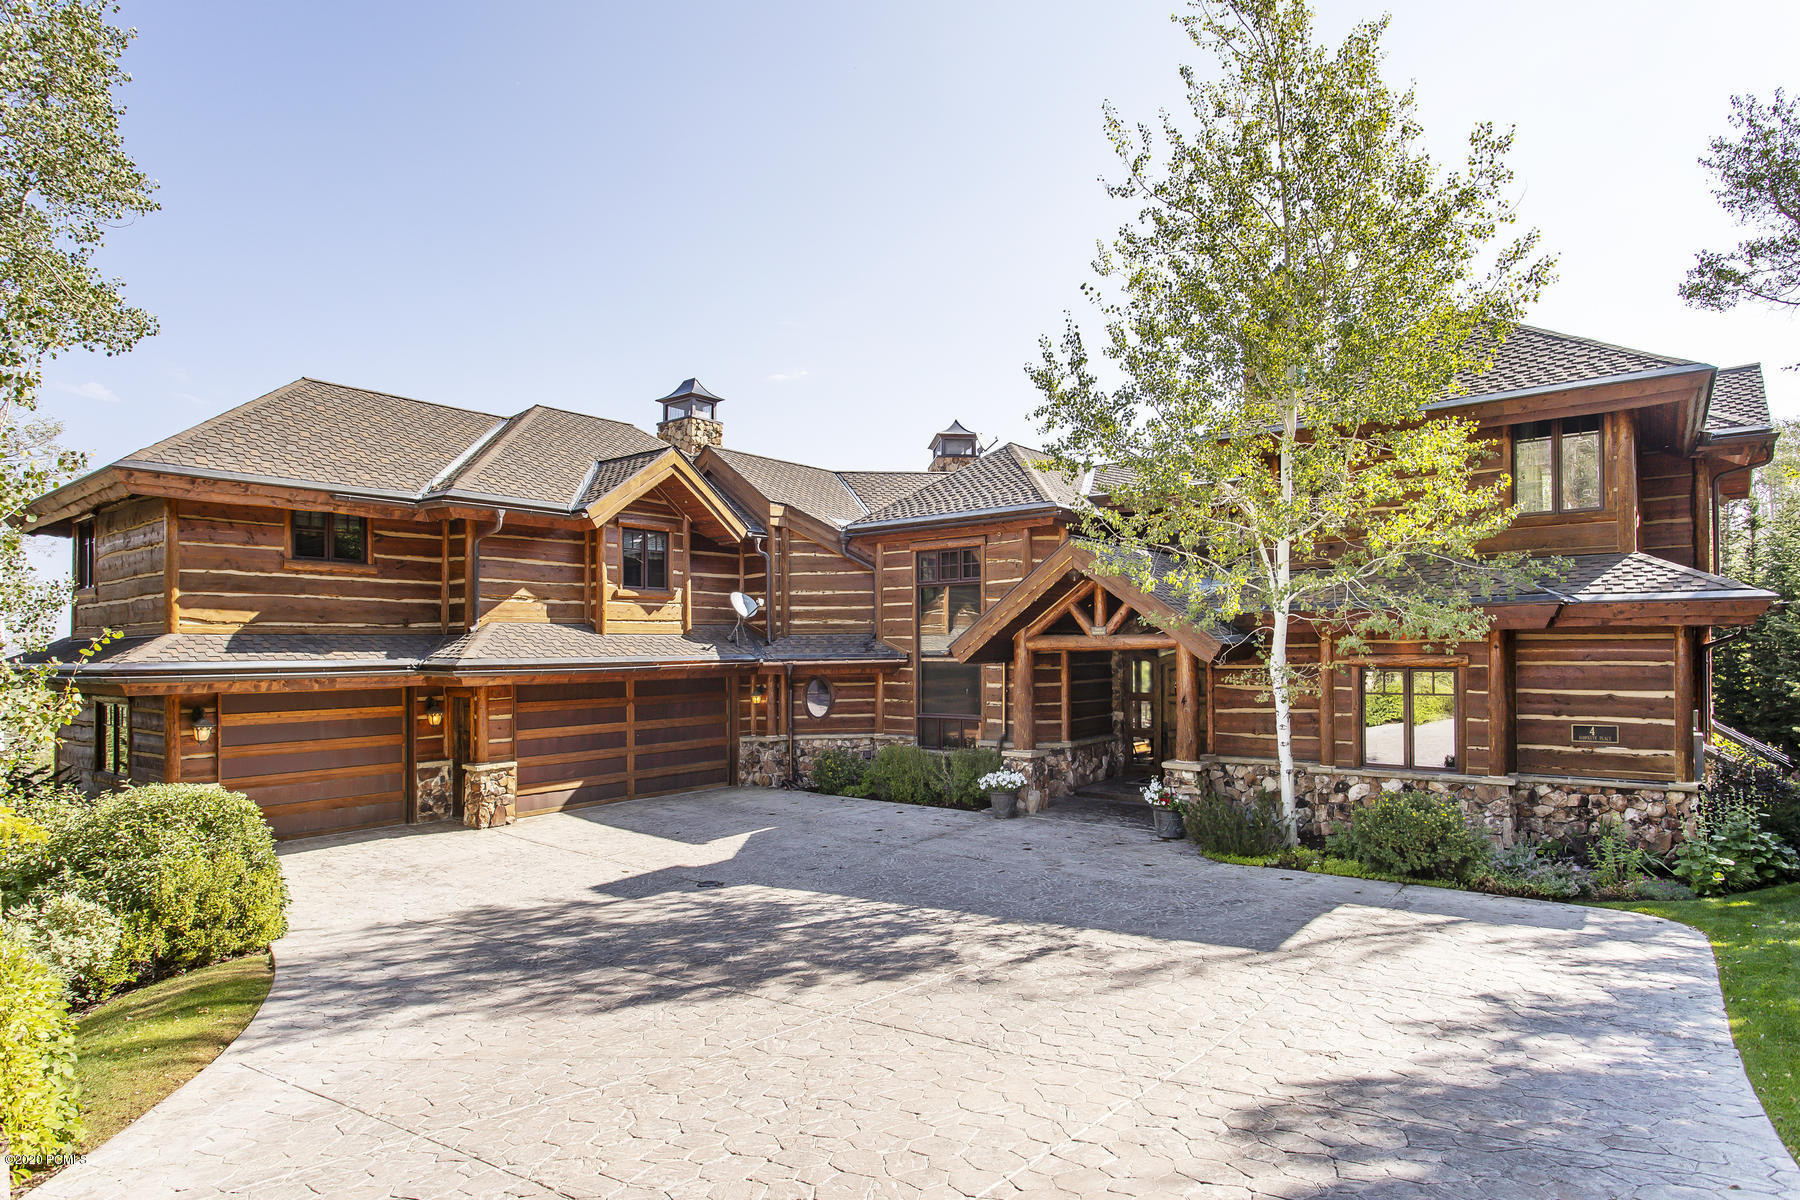 4 Hawkeye Place, Park City, Utah 84060, 6 Bedrooms Bedrooms, ,9 BathroomsBathrooms,Single Family,For Sale,Hawkeye,12003204